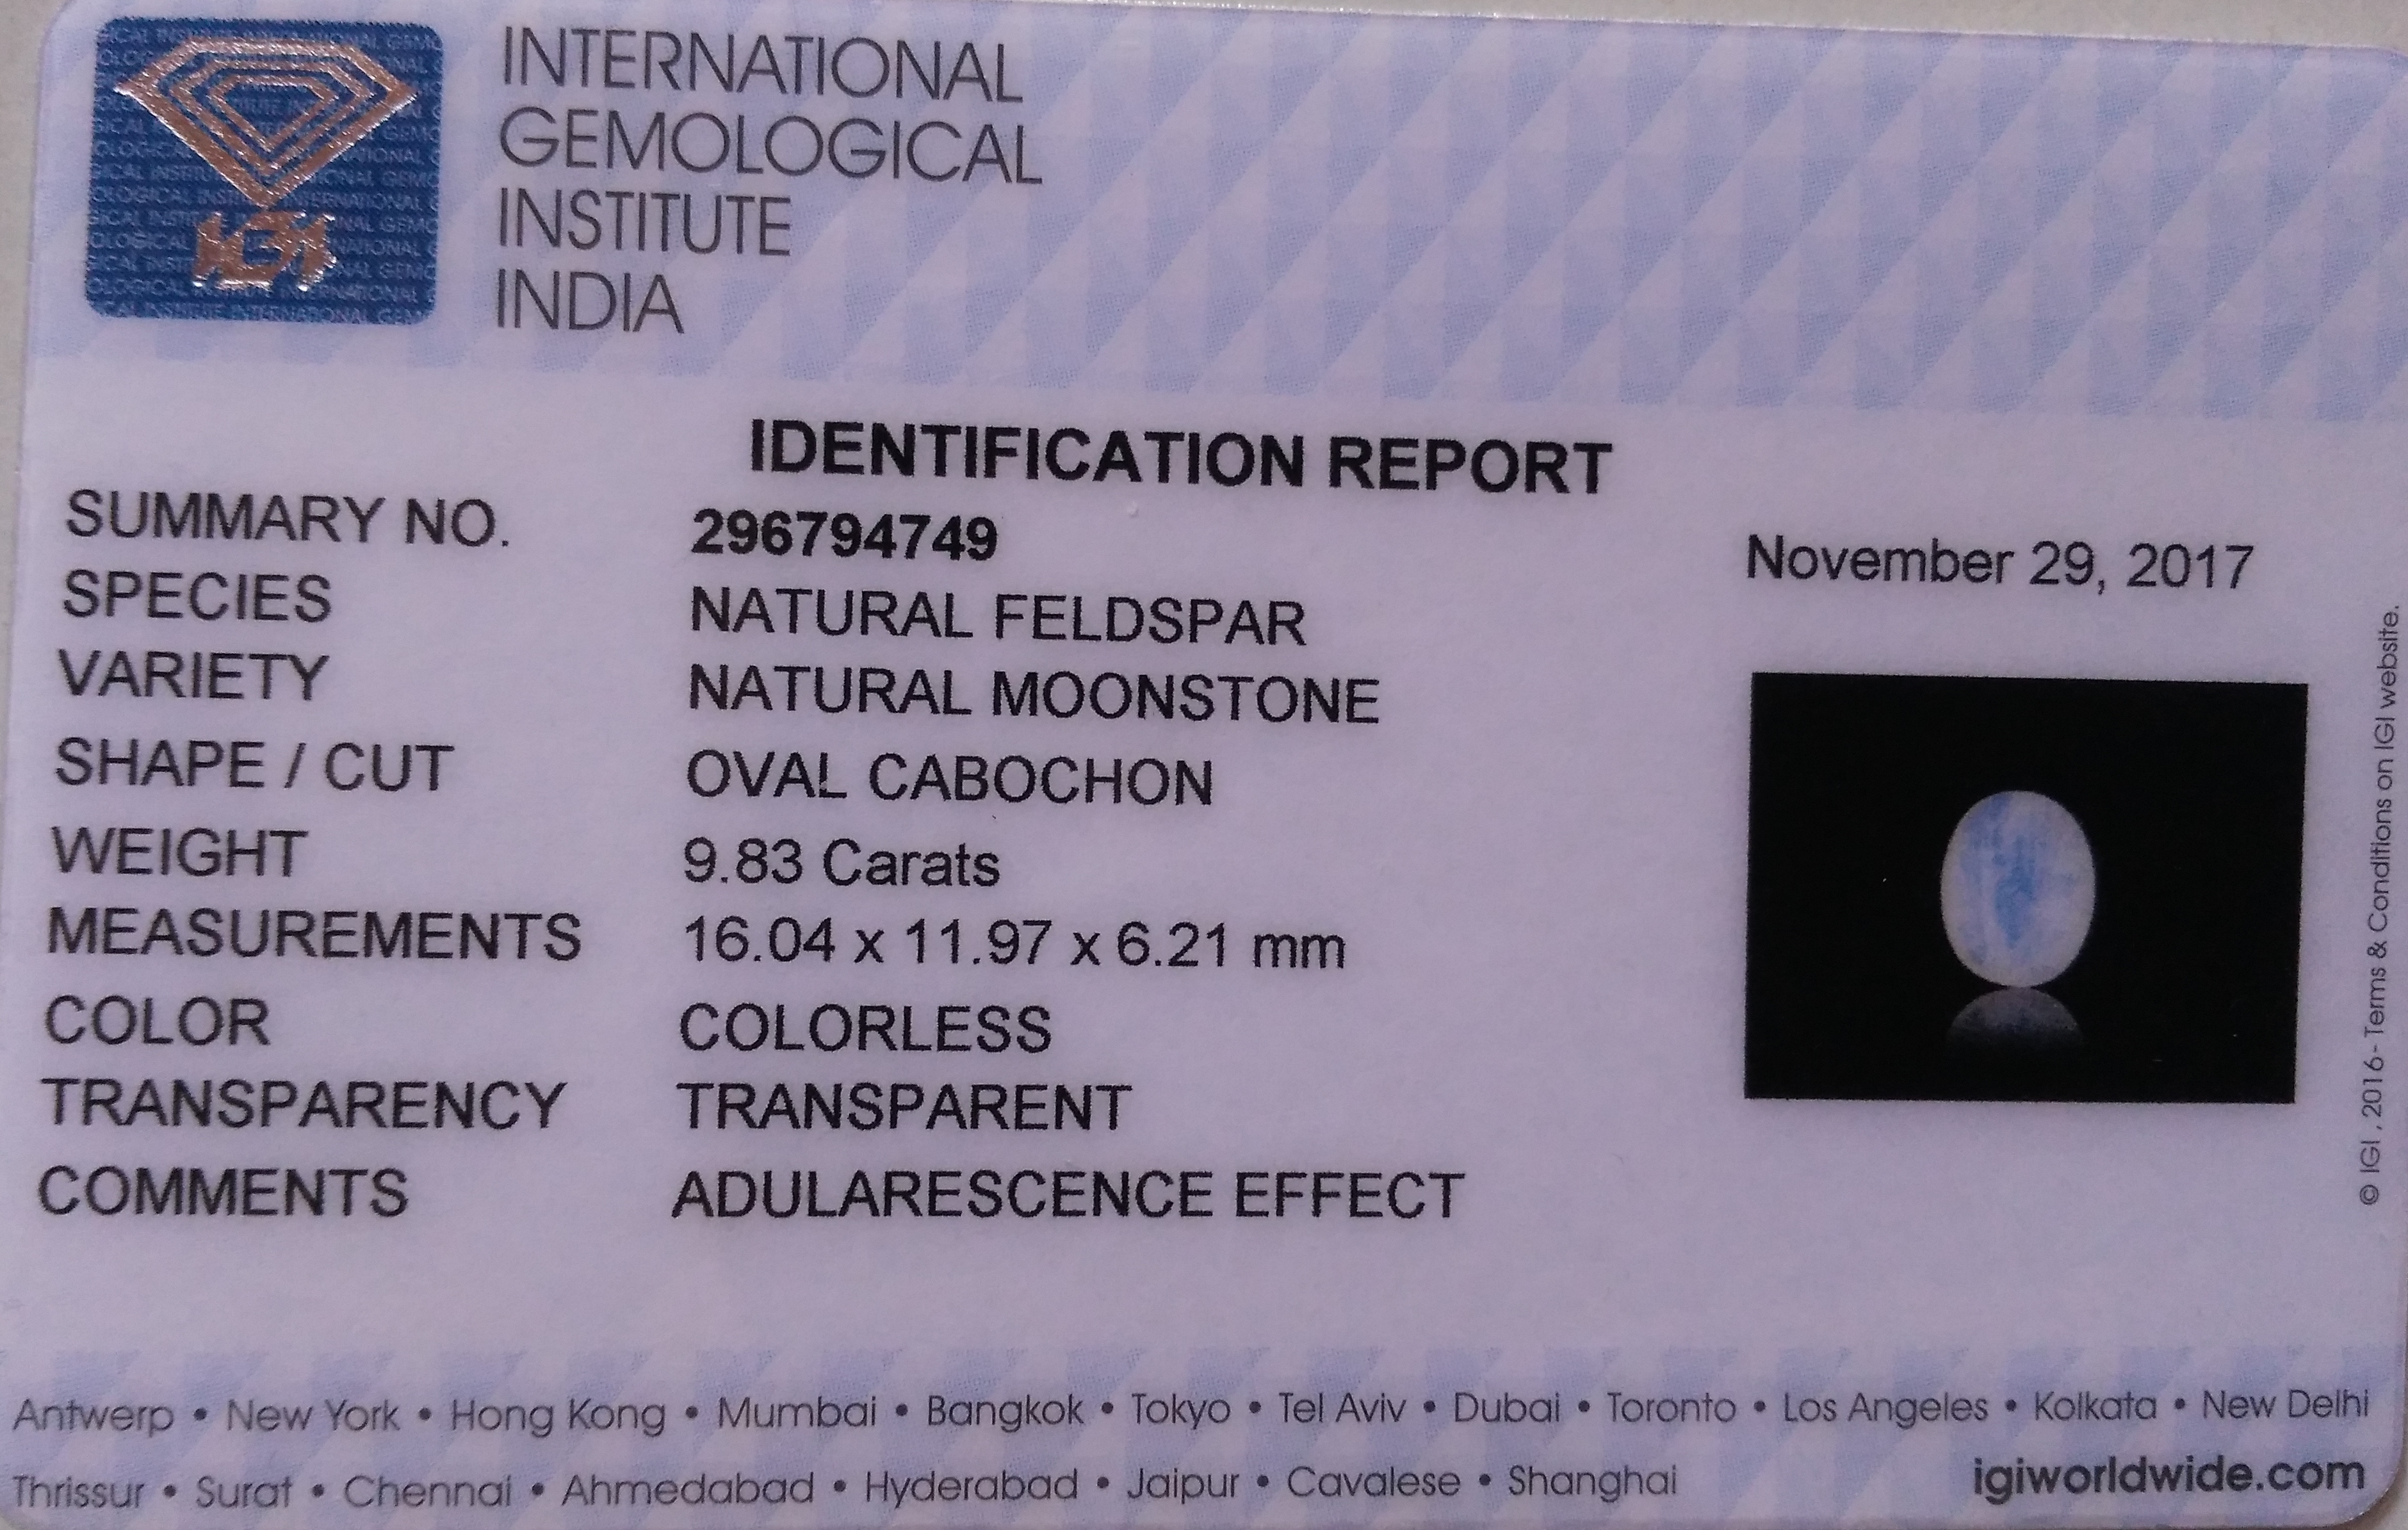 #Colorless Moonstone 9.83